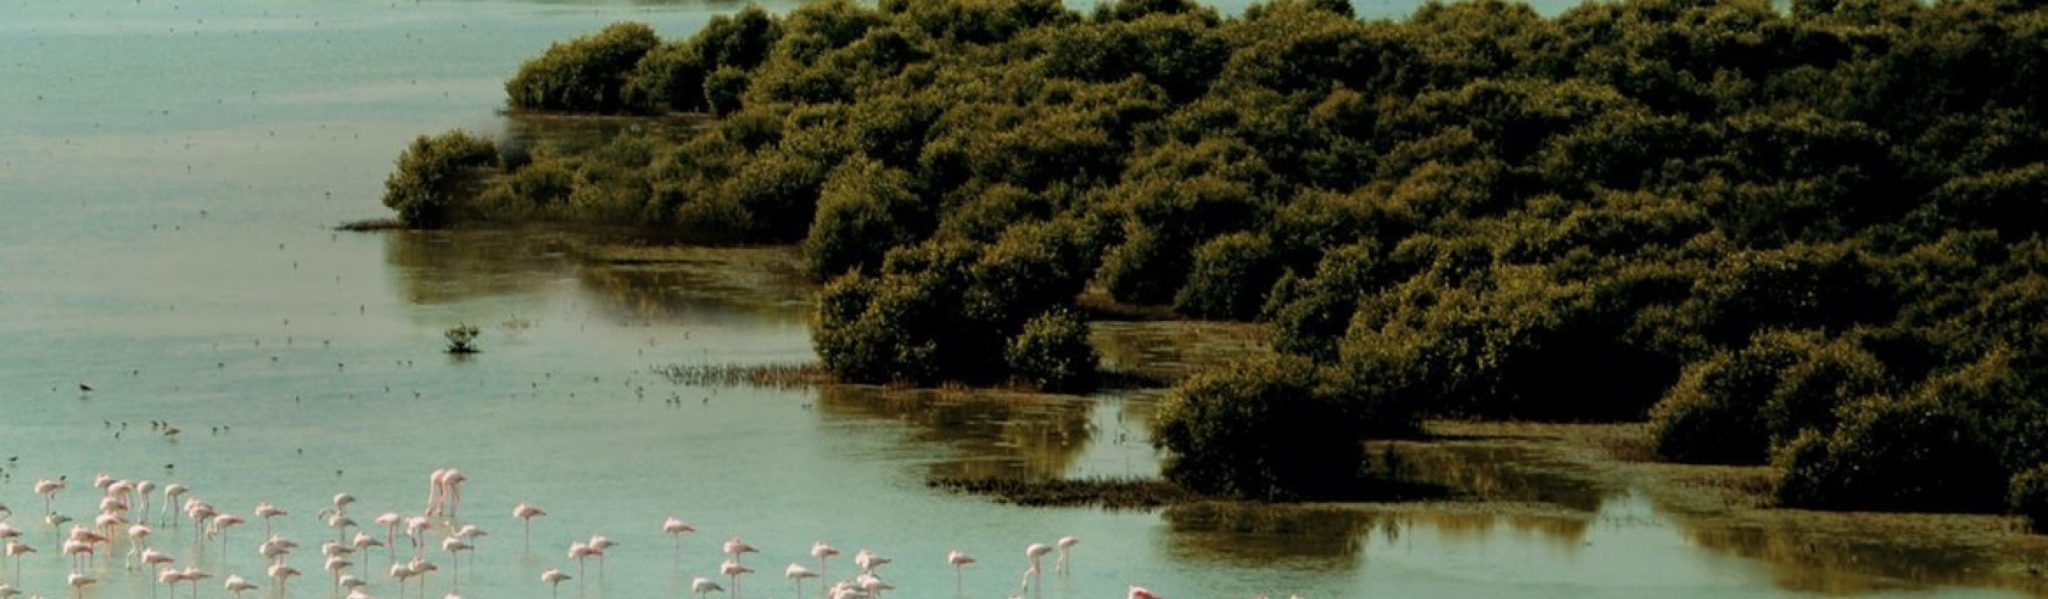 al-zorah nature reserves in the uae